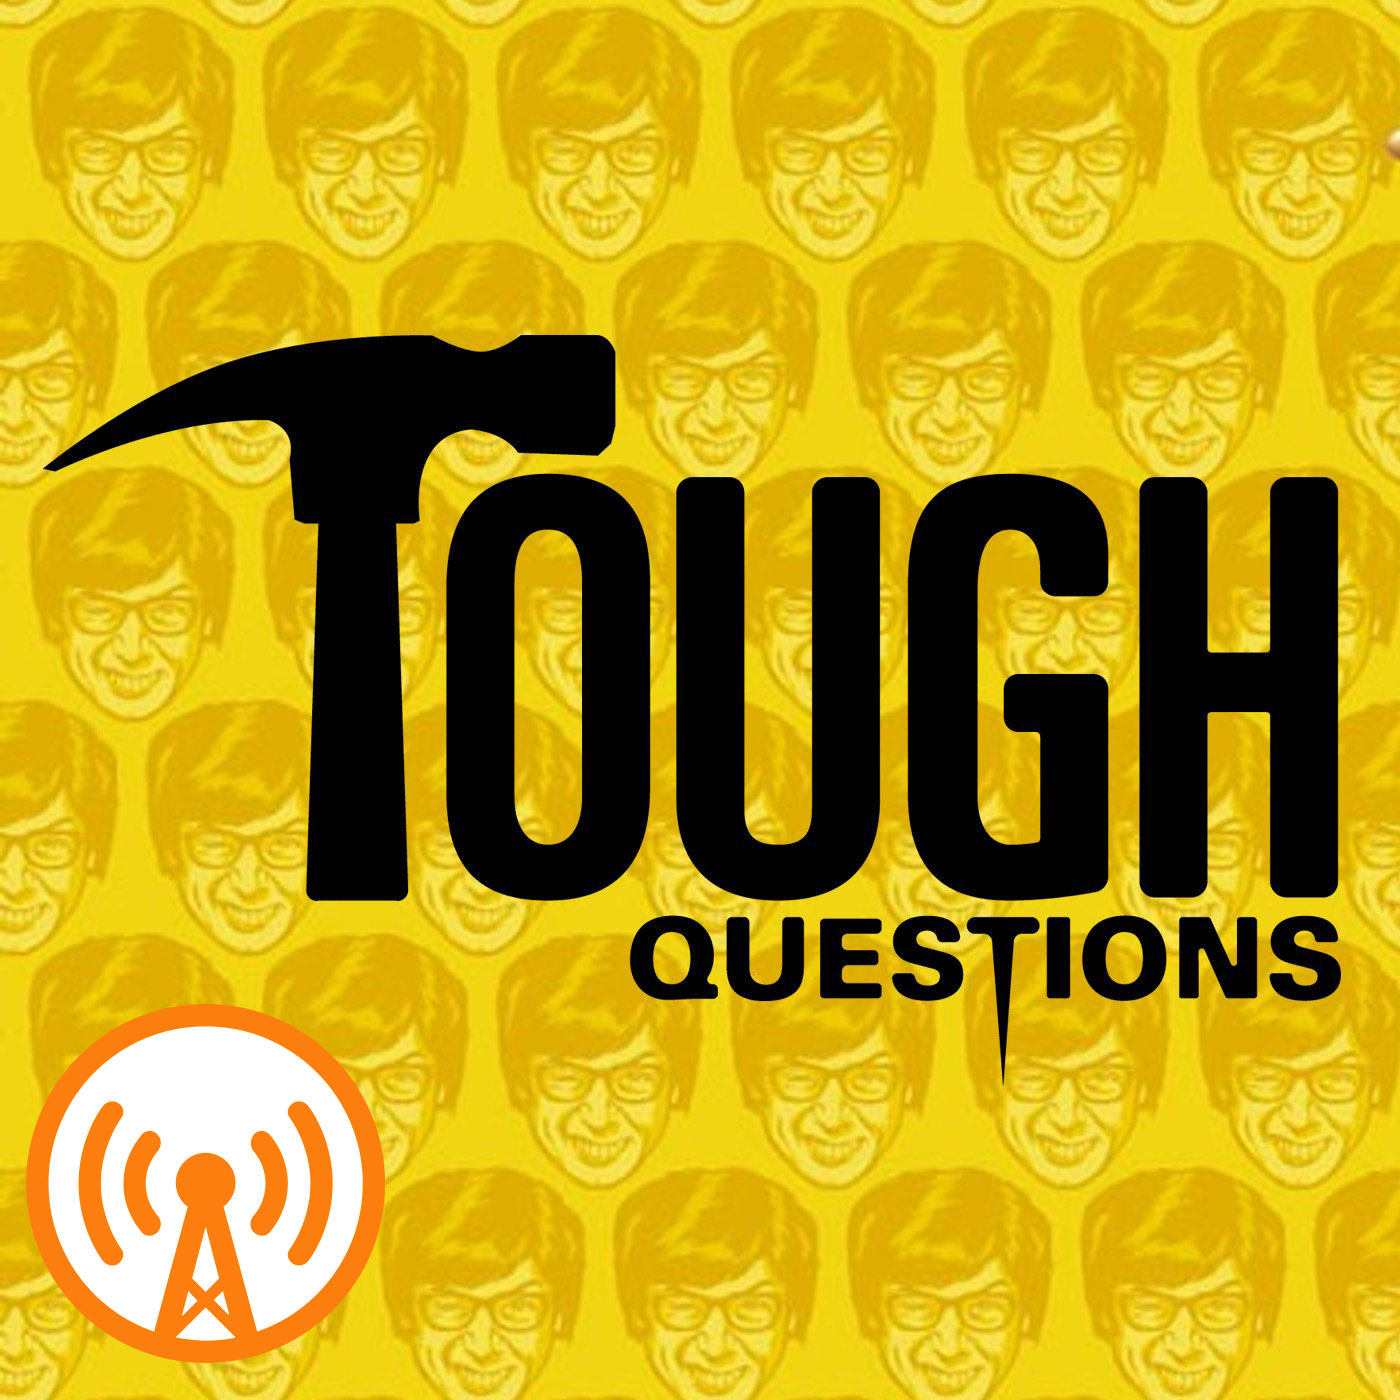 tough questions on  Overcast!